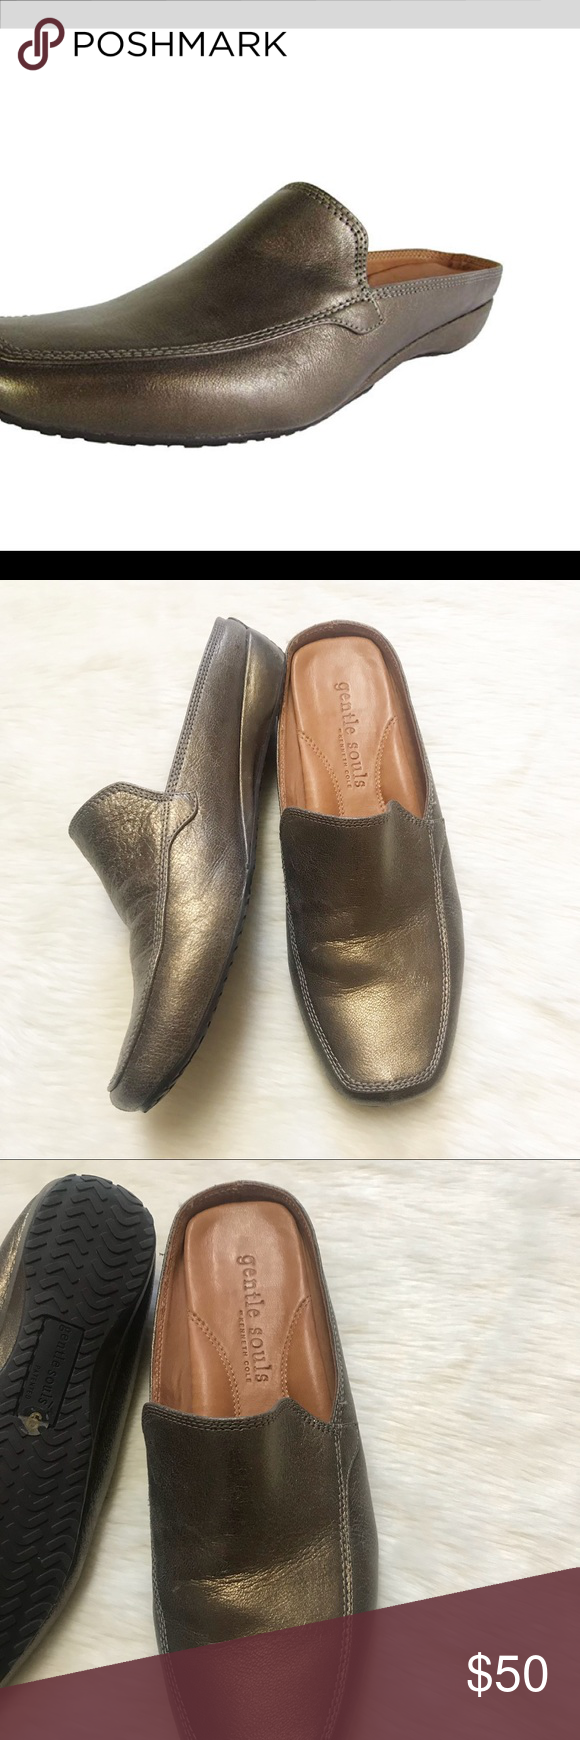 5fa04e442bb Gentle Souls by Kenneth Cole Imex Bronze Slides Gorgeous bronze leather  slides from Gentle Souls by Kenneth Cole in a size 9. This is the Imex shoe.